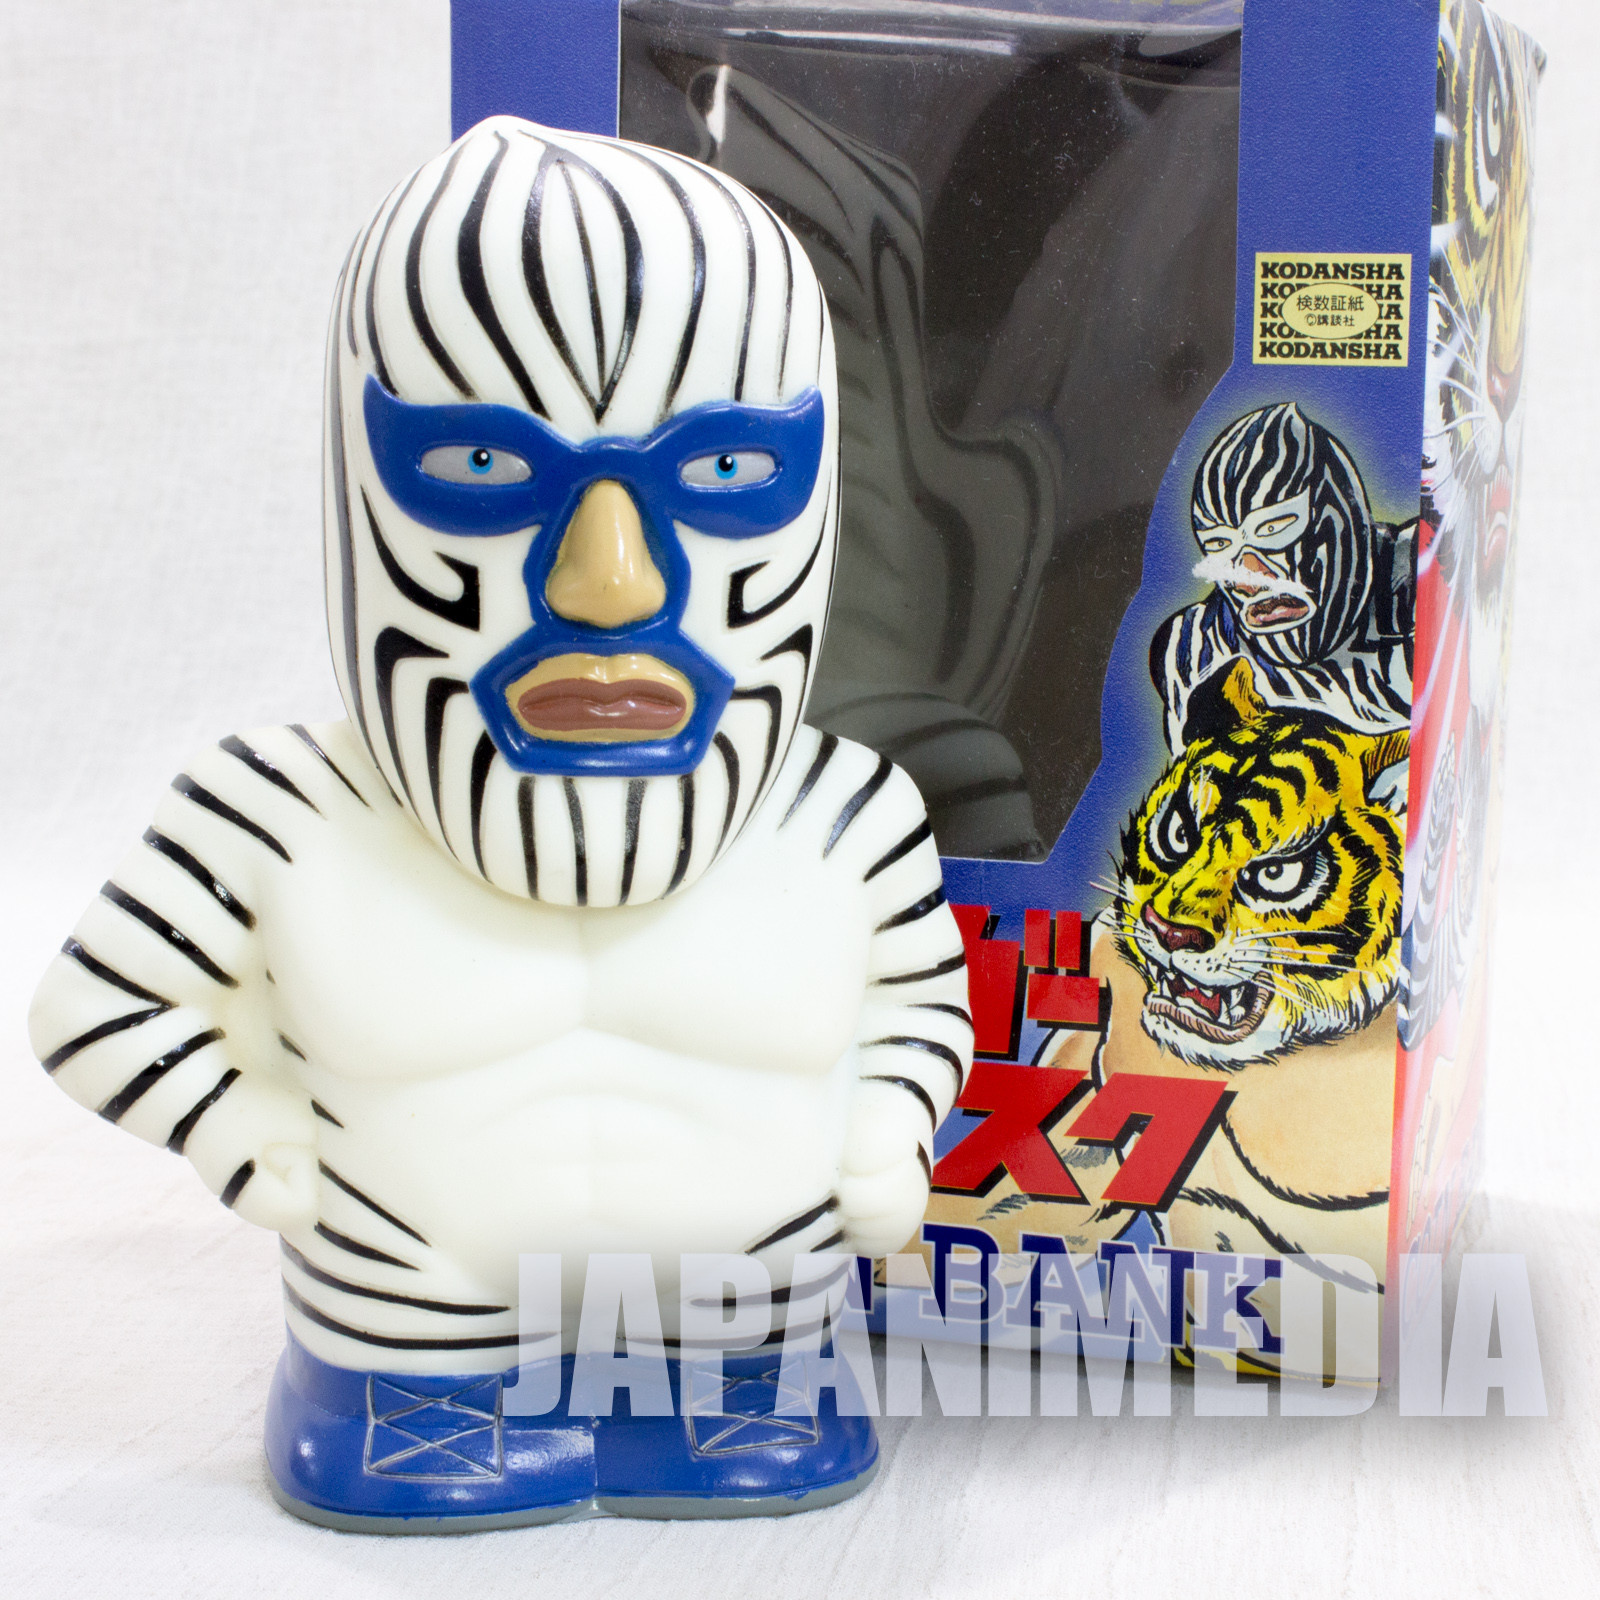 Tiger Mask Zebraman Soft Vinyl Figure Coin Bank JAPAN ANIME MANGA Pro Wrestling